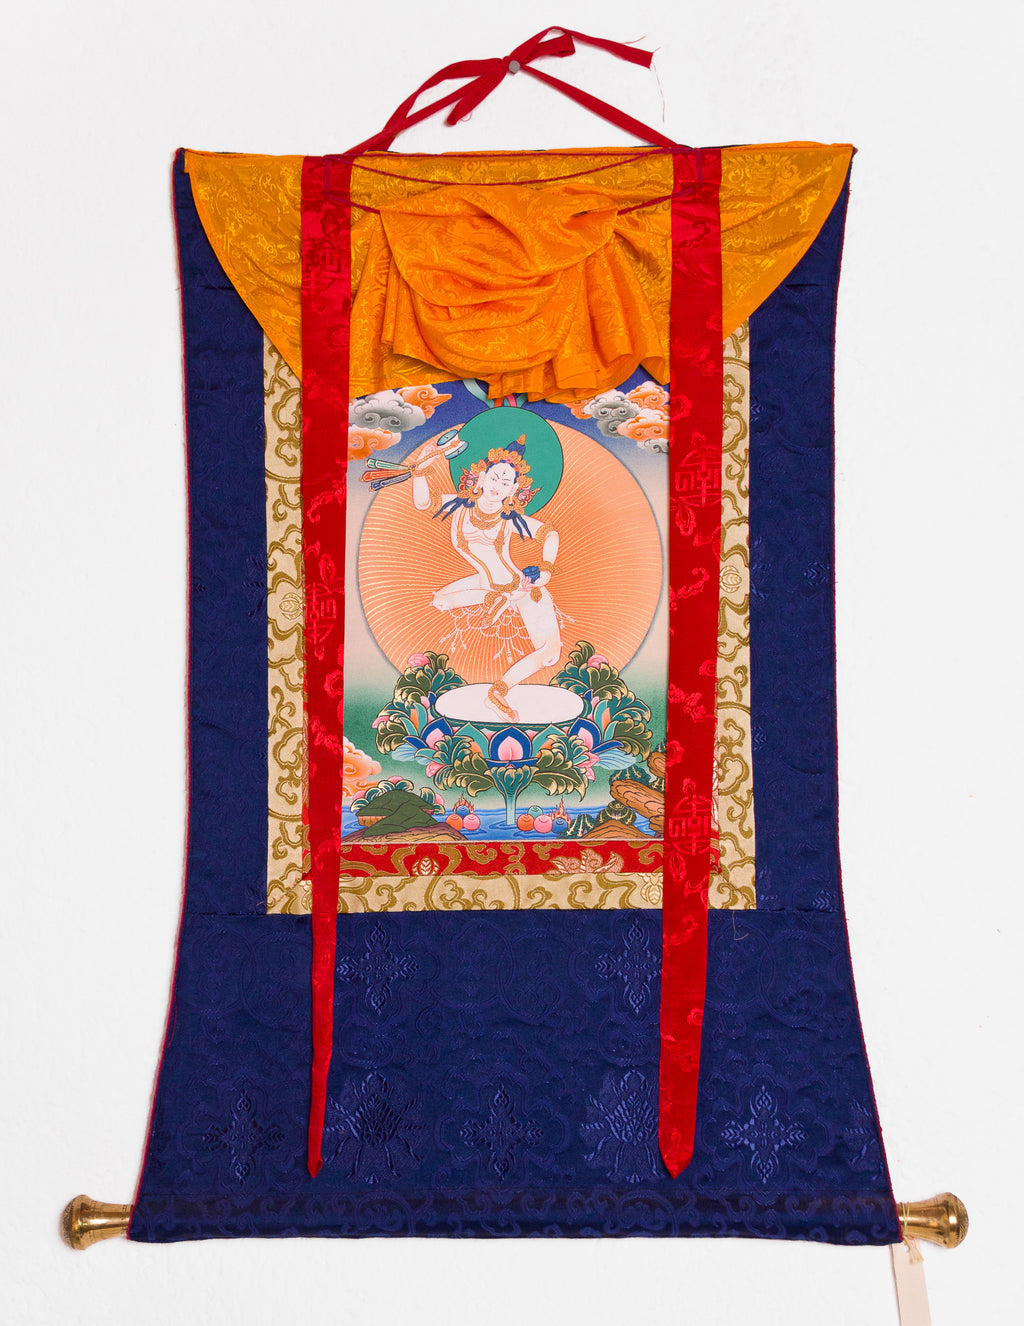 Machig Labdrön Thangka I